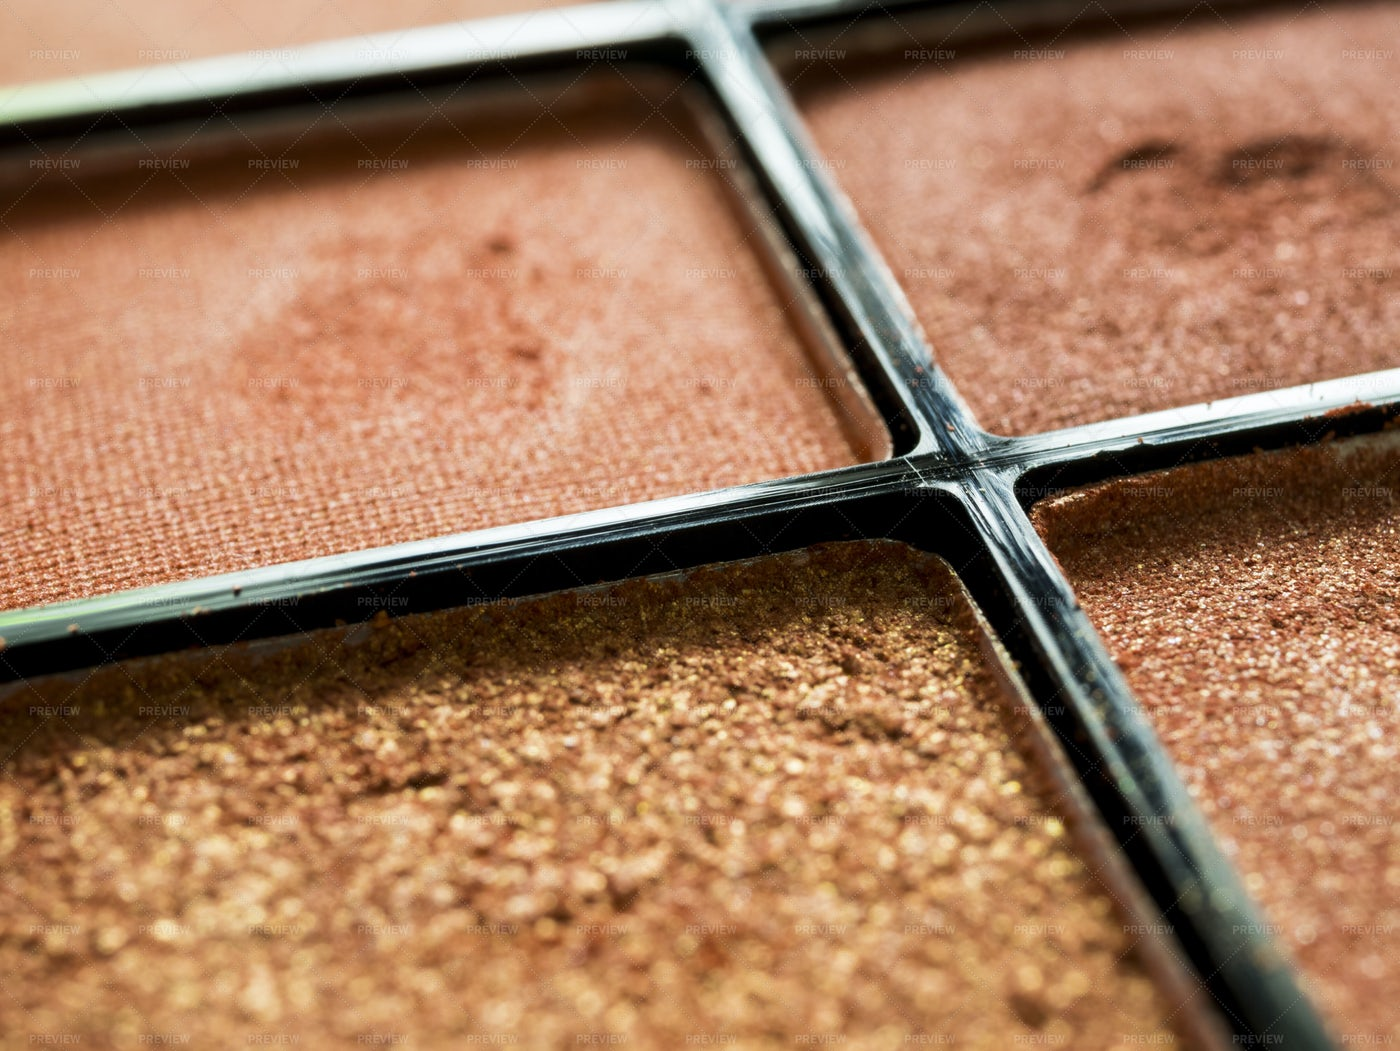 Used Eye Shadow In Package: Stock Photos